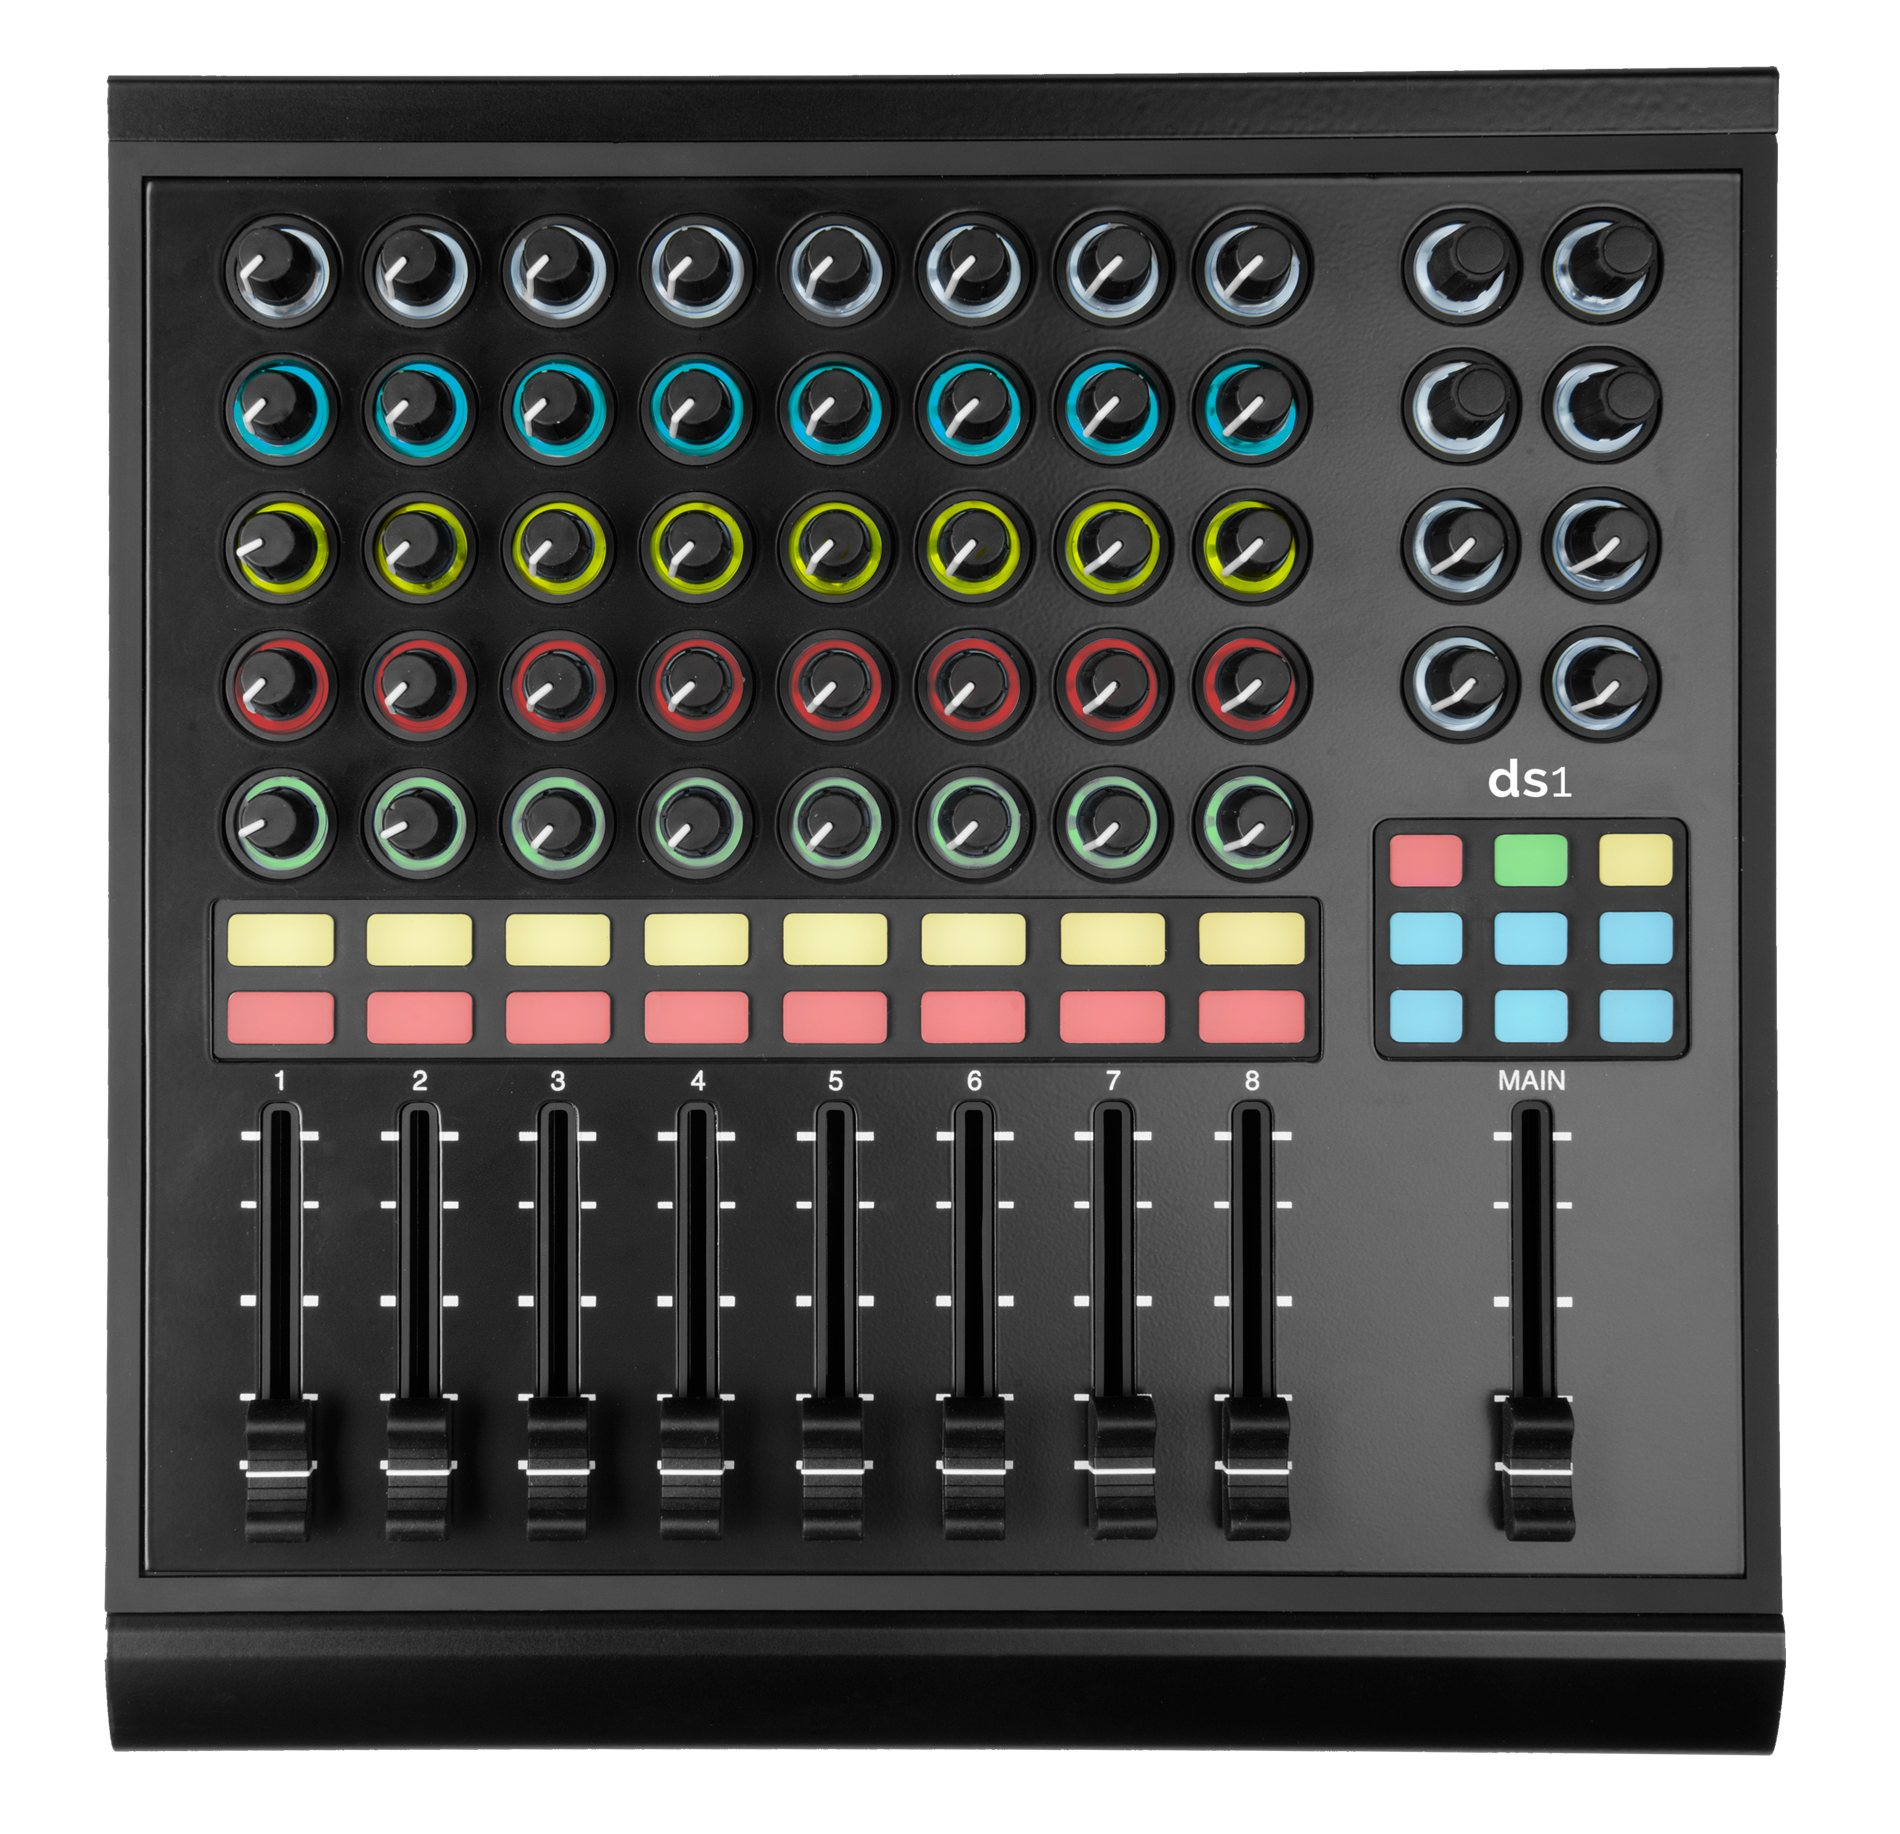 midi controller with loads of faders knobs app support livid ds1 on preorder gallery cdm